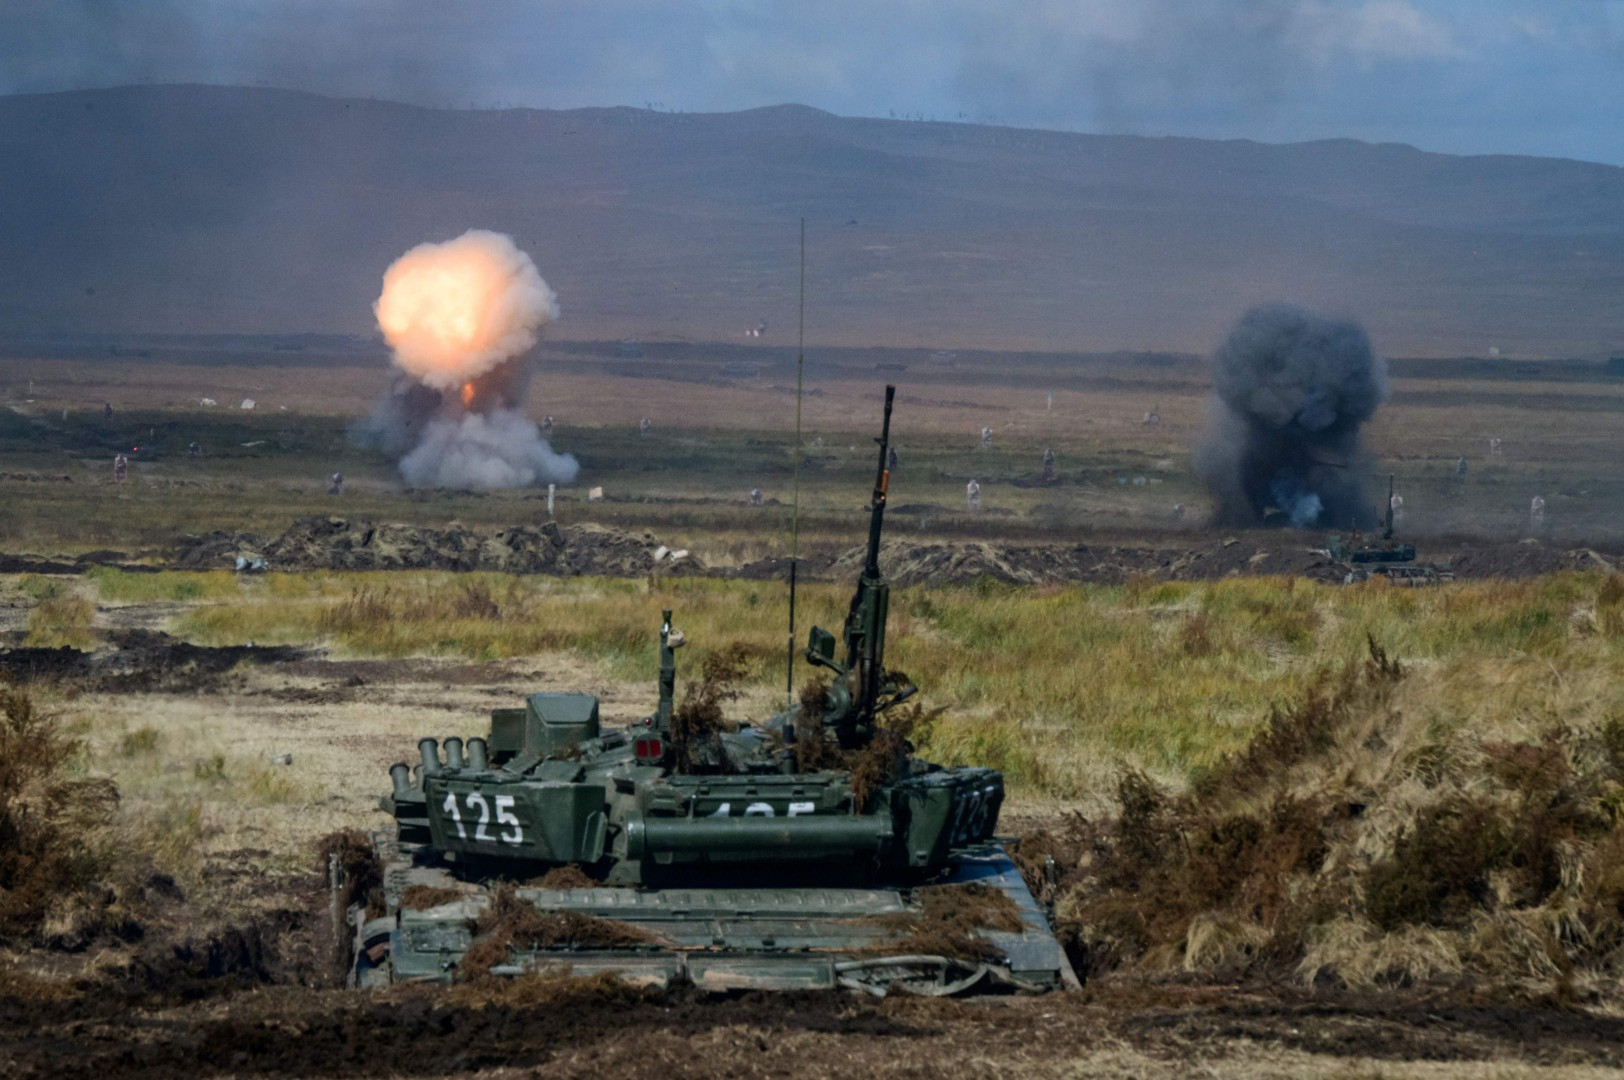 TOPSHOT - Explosions are seen during the Vostok-2018 (East-2018) military drills at Tsugol training ground not far from the Chinese and Mongolian border in Siberia, on September 13, 2018. (Photo by Mladen ANTONOV / AFP)